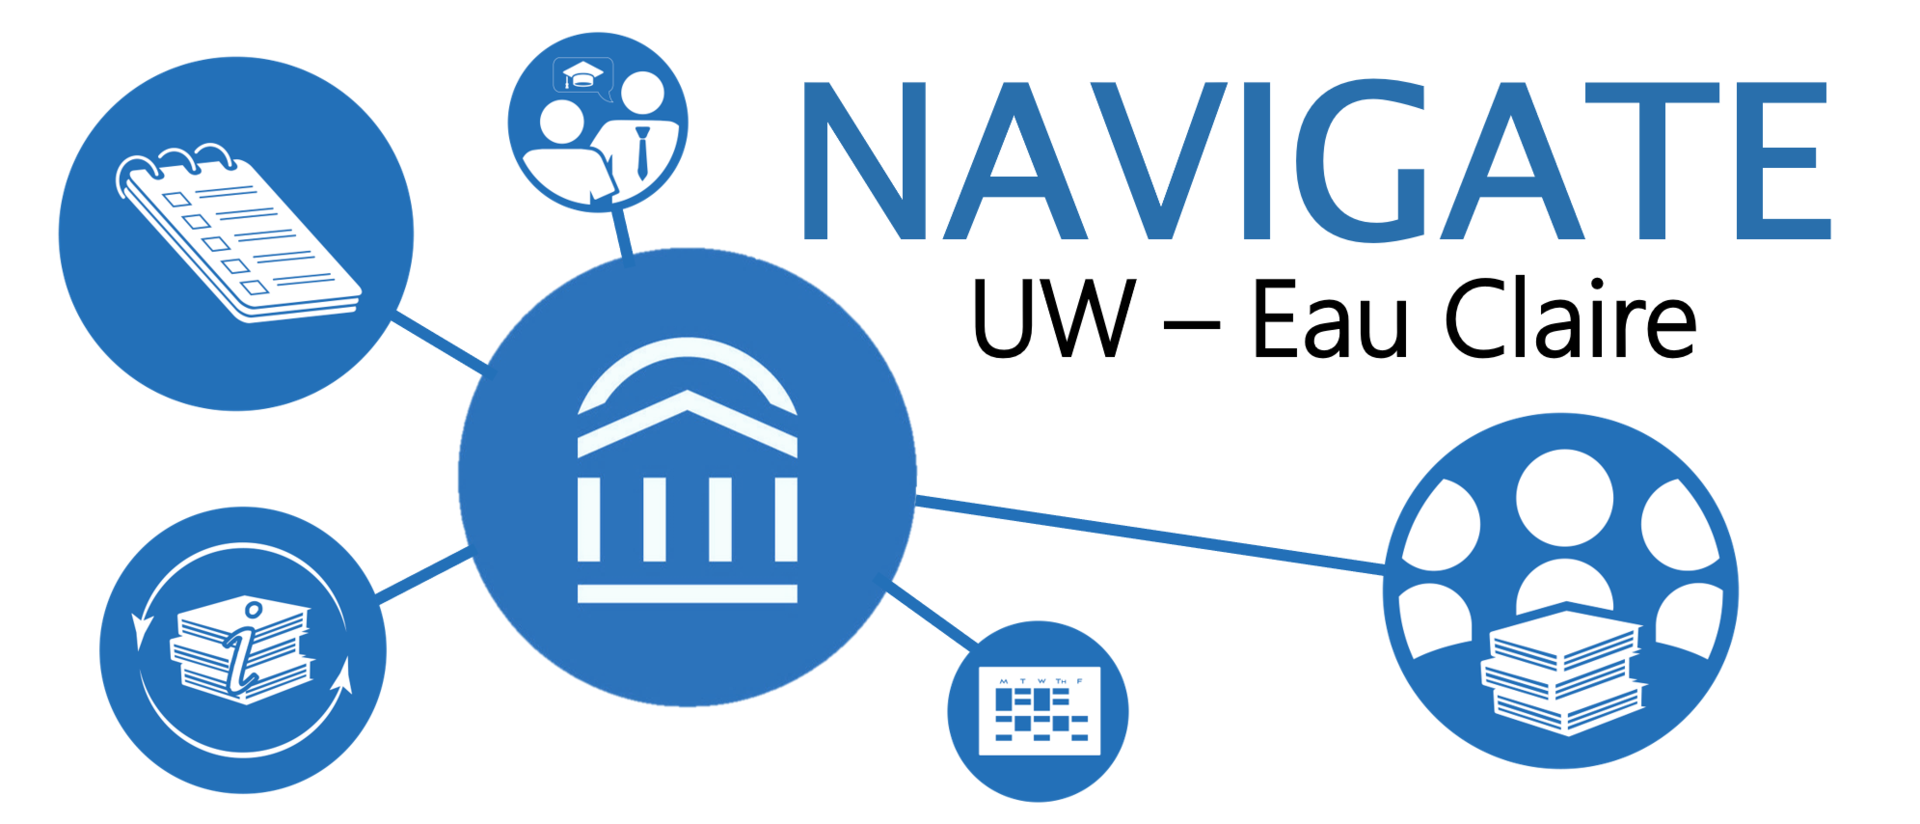 The Navigate Student app and its web of capabilities